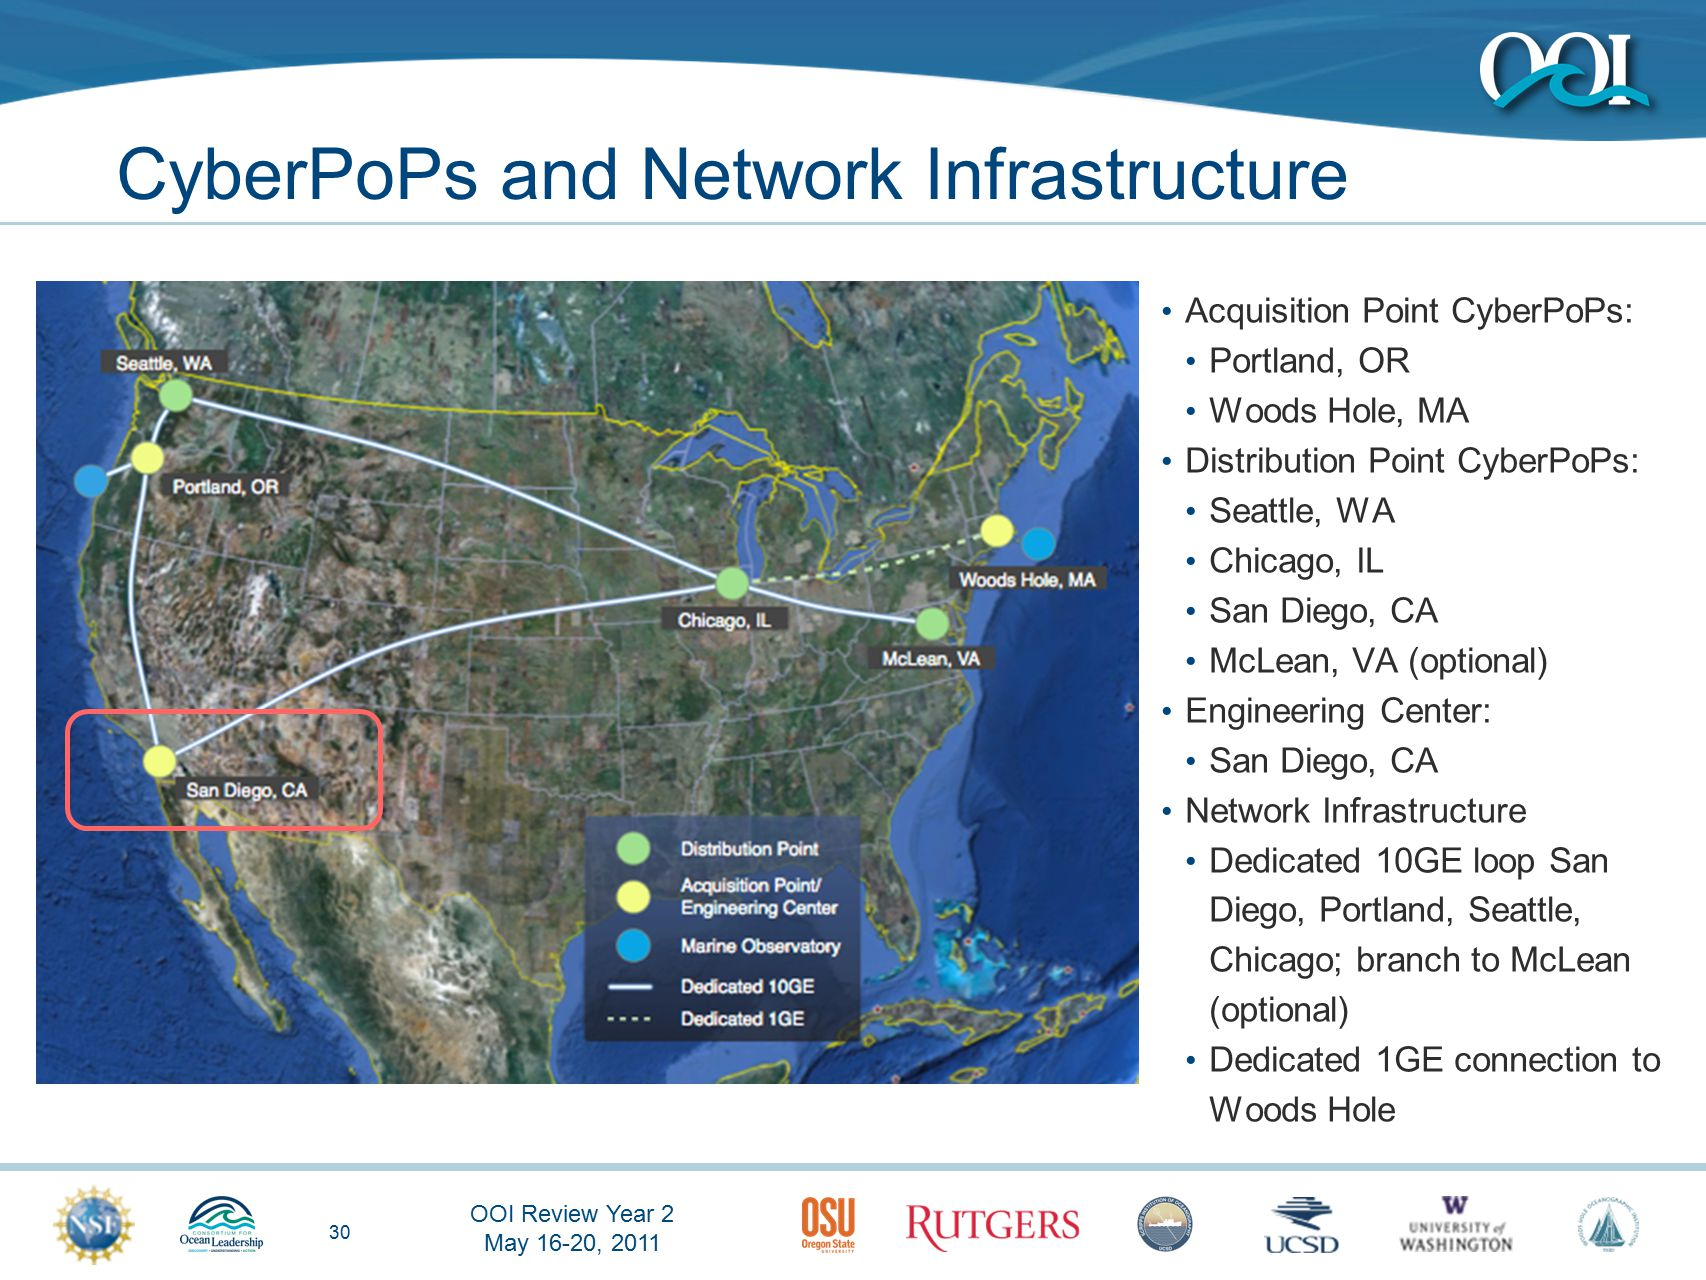 OOI Review Year 2 May 16-20, 2011 30 CyberPoPs and Network Infrastructure Acquisition Point CyberPoPs: Portland, OR Woods Hole, MA Distribution Point CyberPoPs: Seattle, WA Chicago, IL San Diego, CA McLean, VA (optional) Engineering Center: San Diego, CA Network Infrastructure Dedicated 10GE loop San Diego, Portland, Seattle, Chicago; branch to McLean (optional) Dedicated 1GE connection to Woods Hole